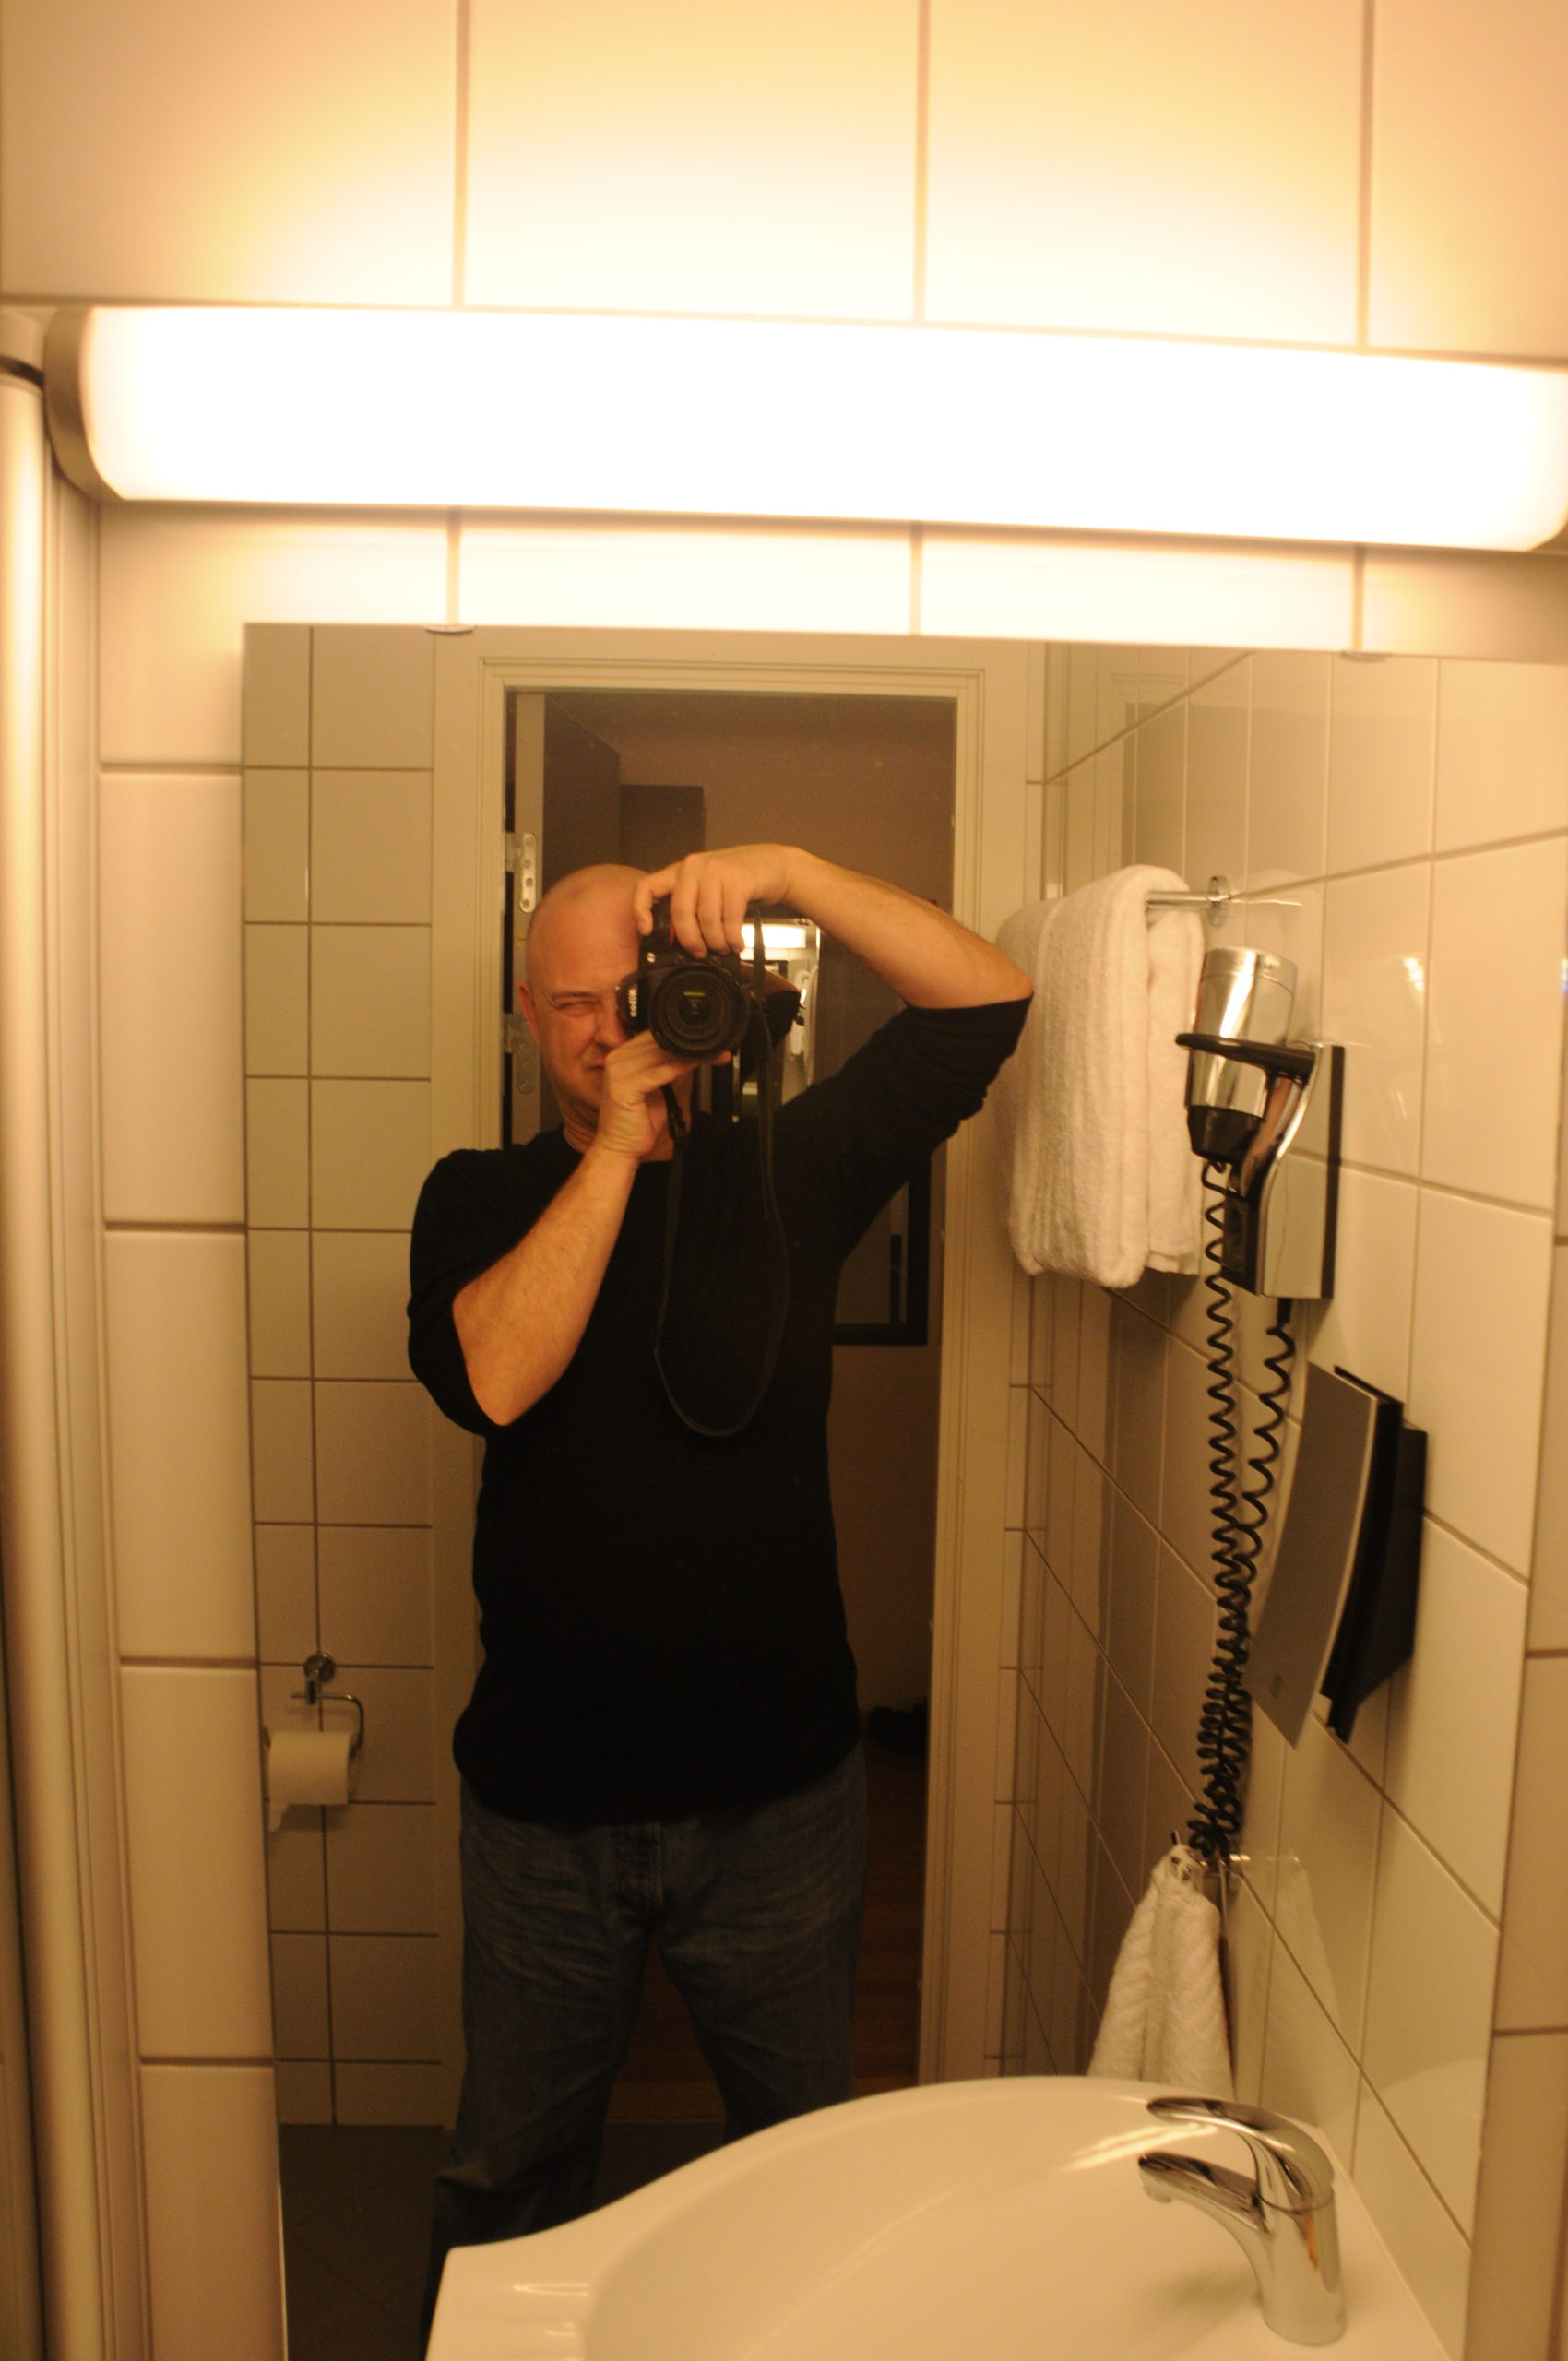 I used a Nikon D300 SLR camera to take a selfie in the mirror in the hotel room in Tromsø. I'm wearing jeans and a long sleeve black t-shirt.